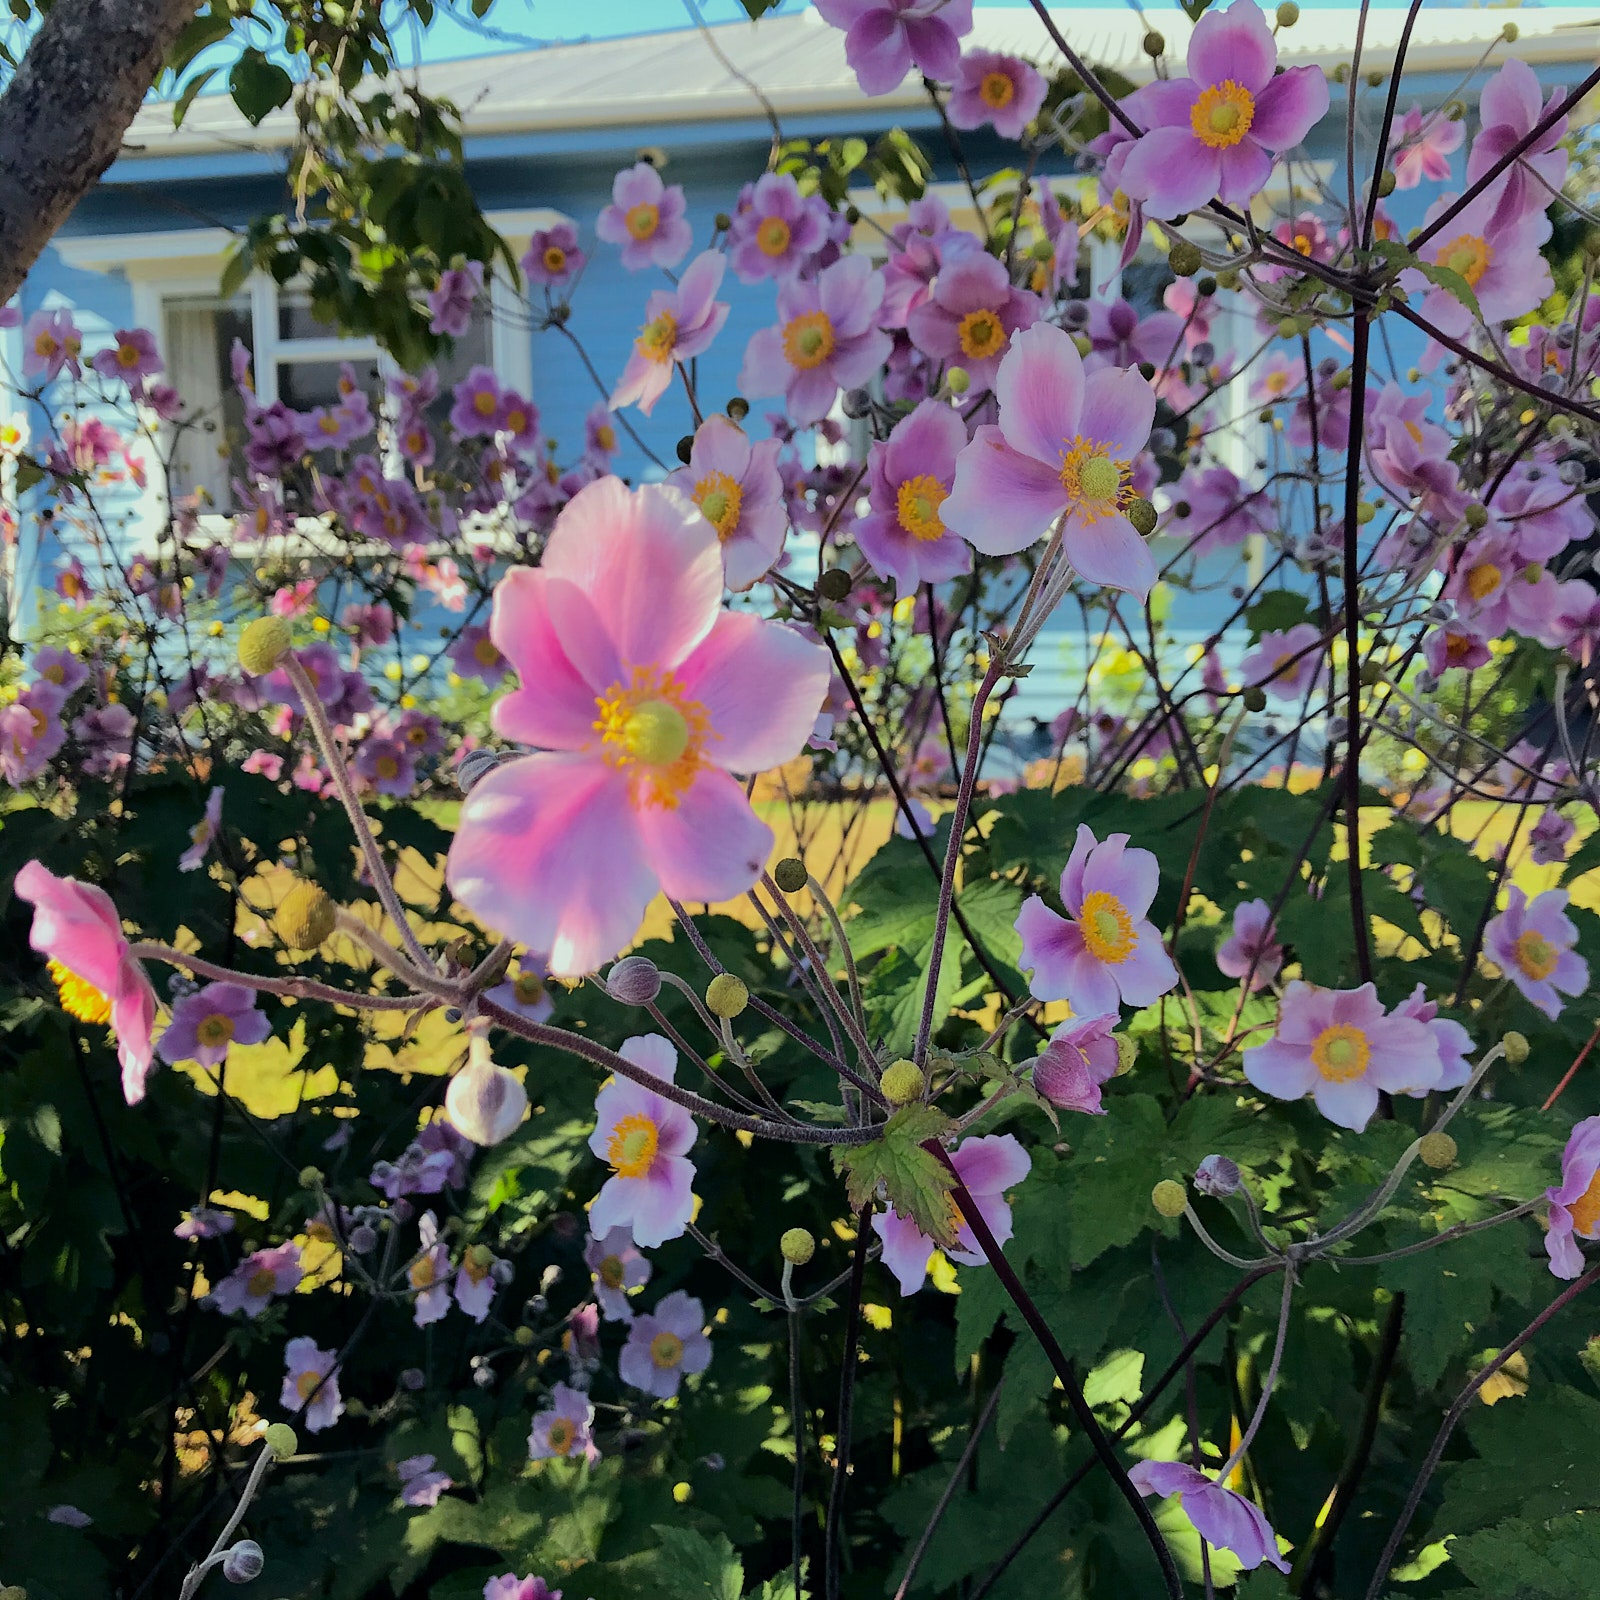 Lots of pink flowers with a blue house in the background